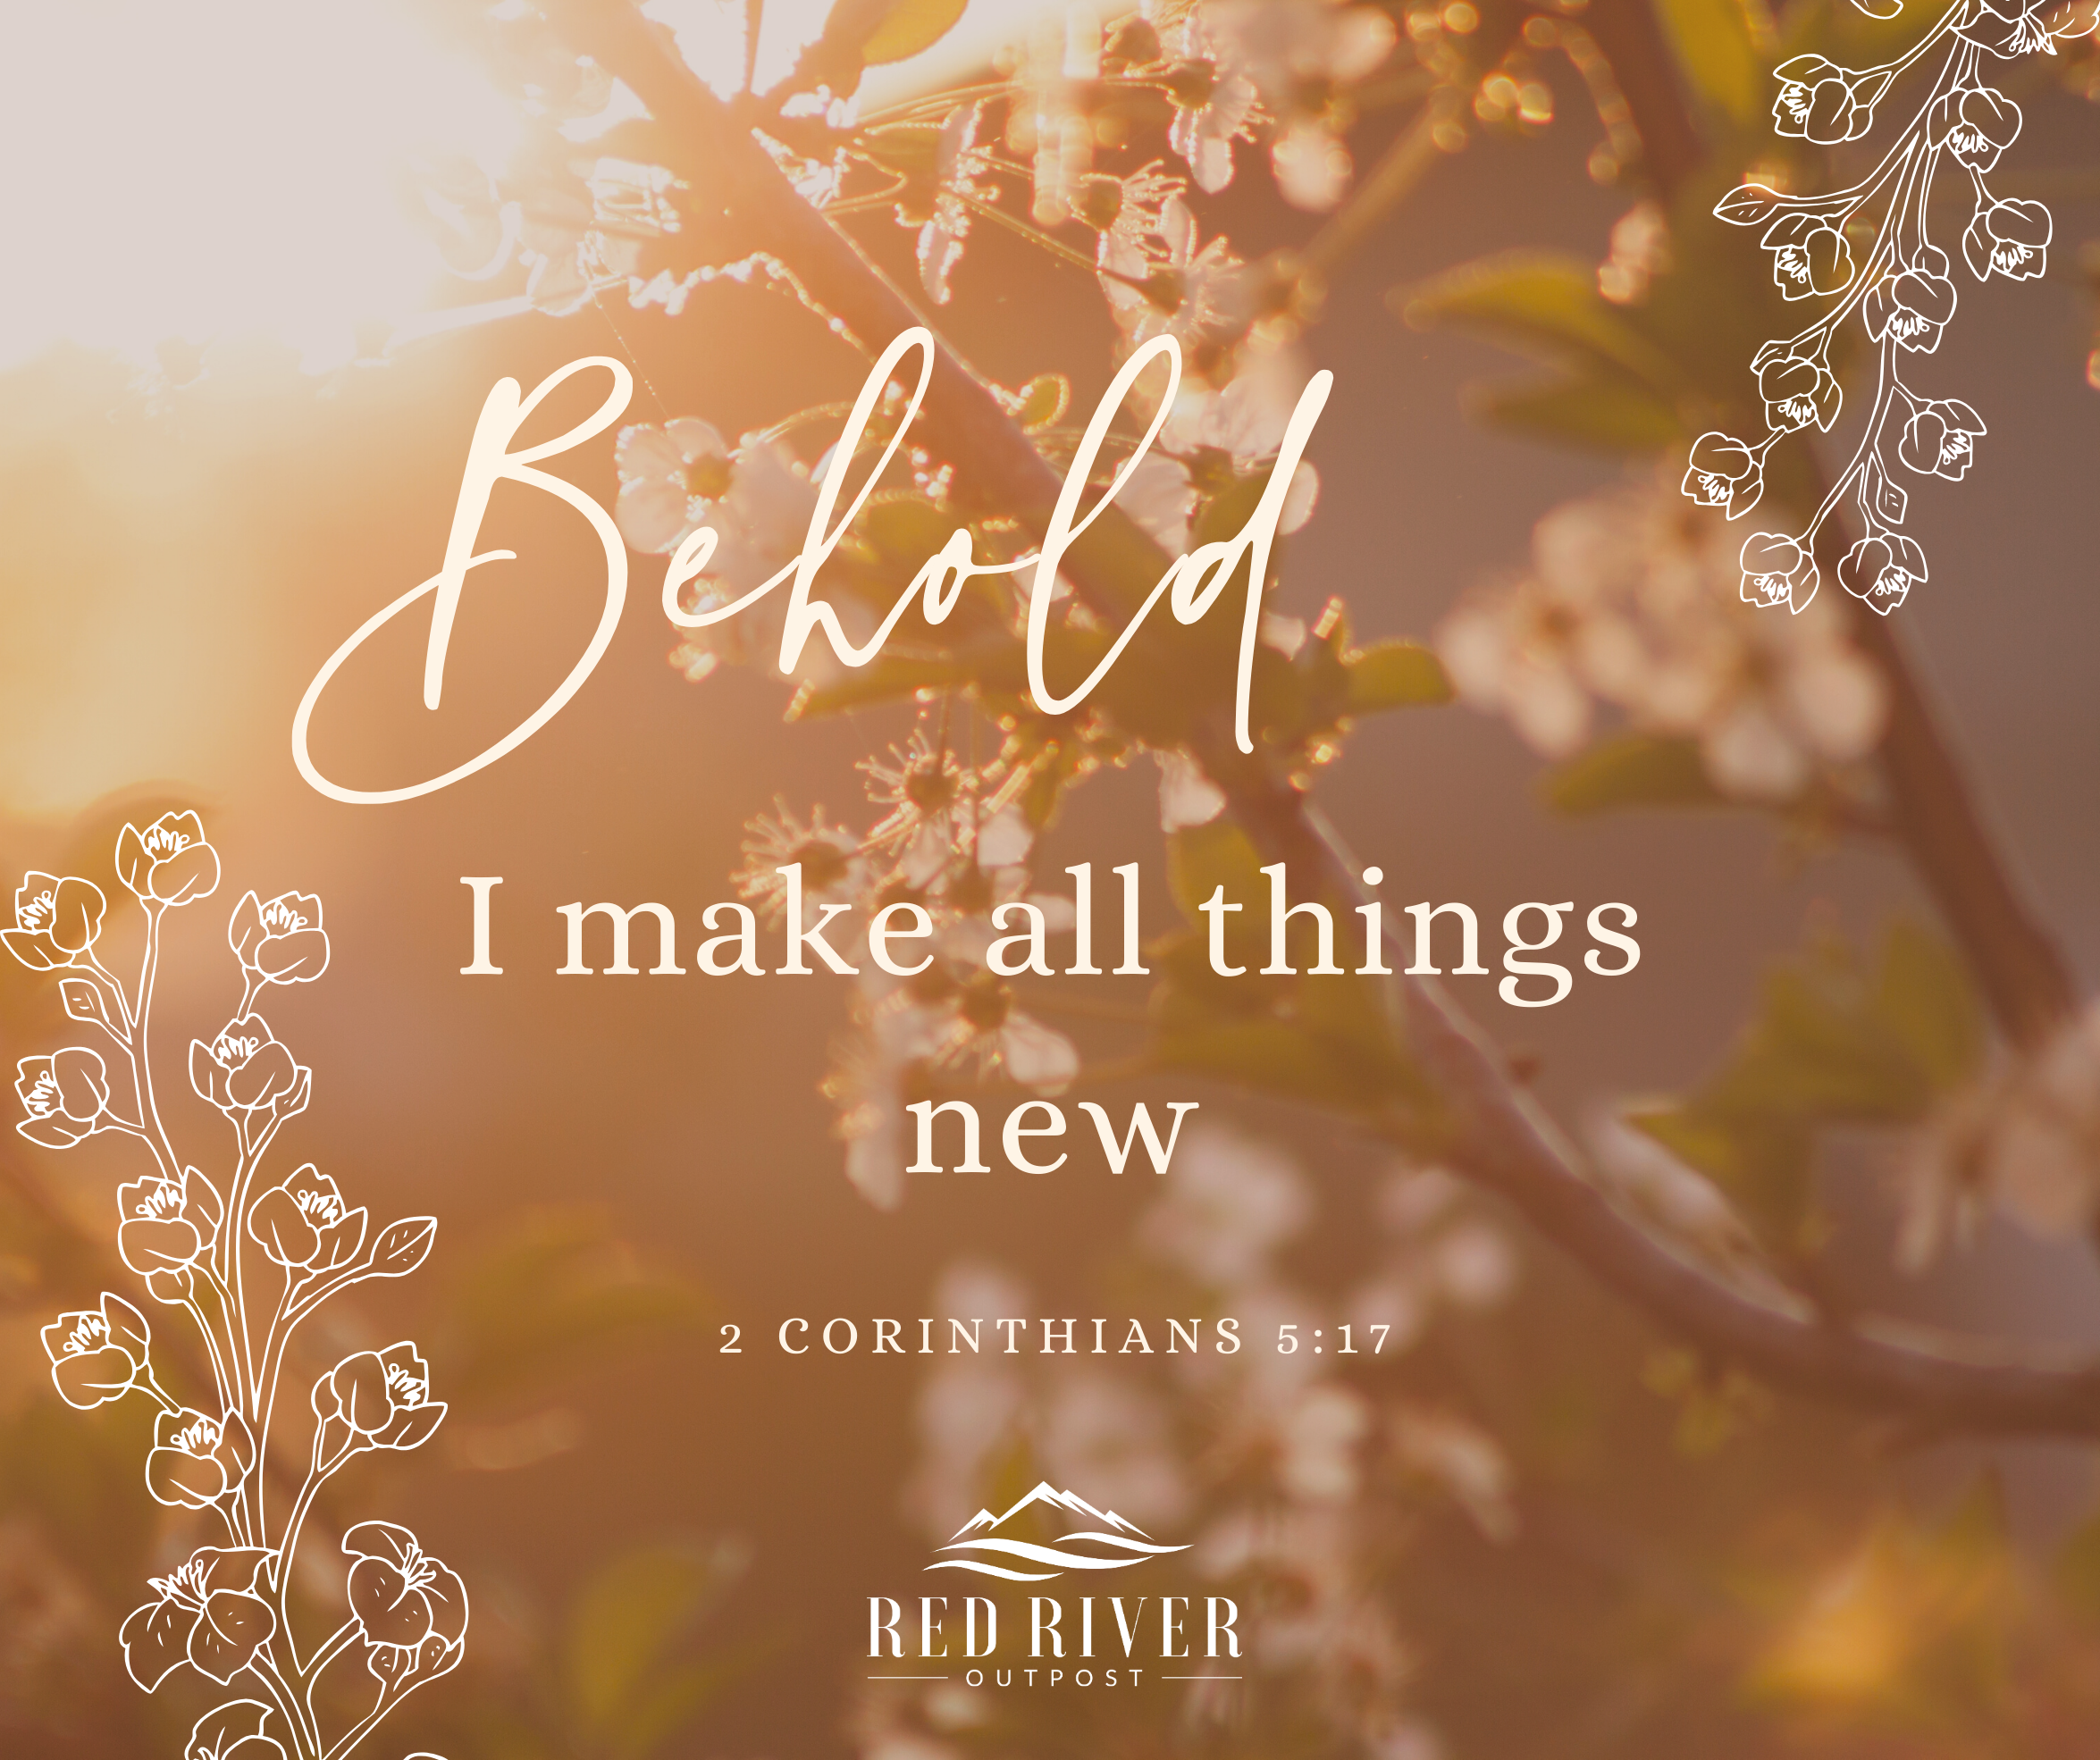 behold I make all things new